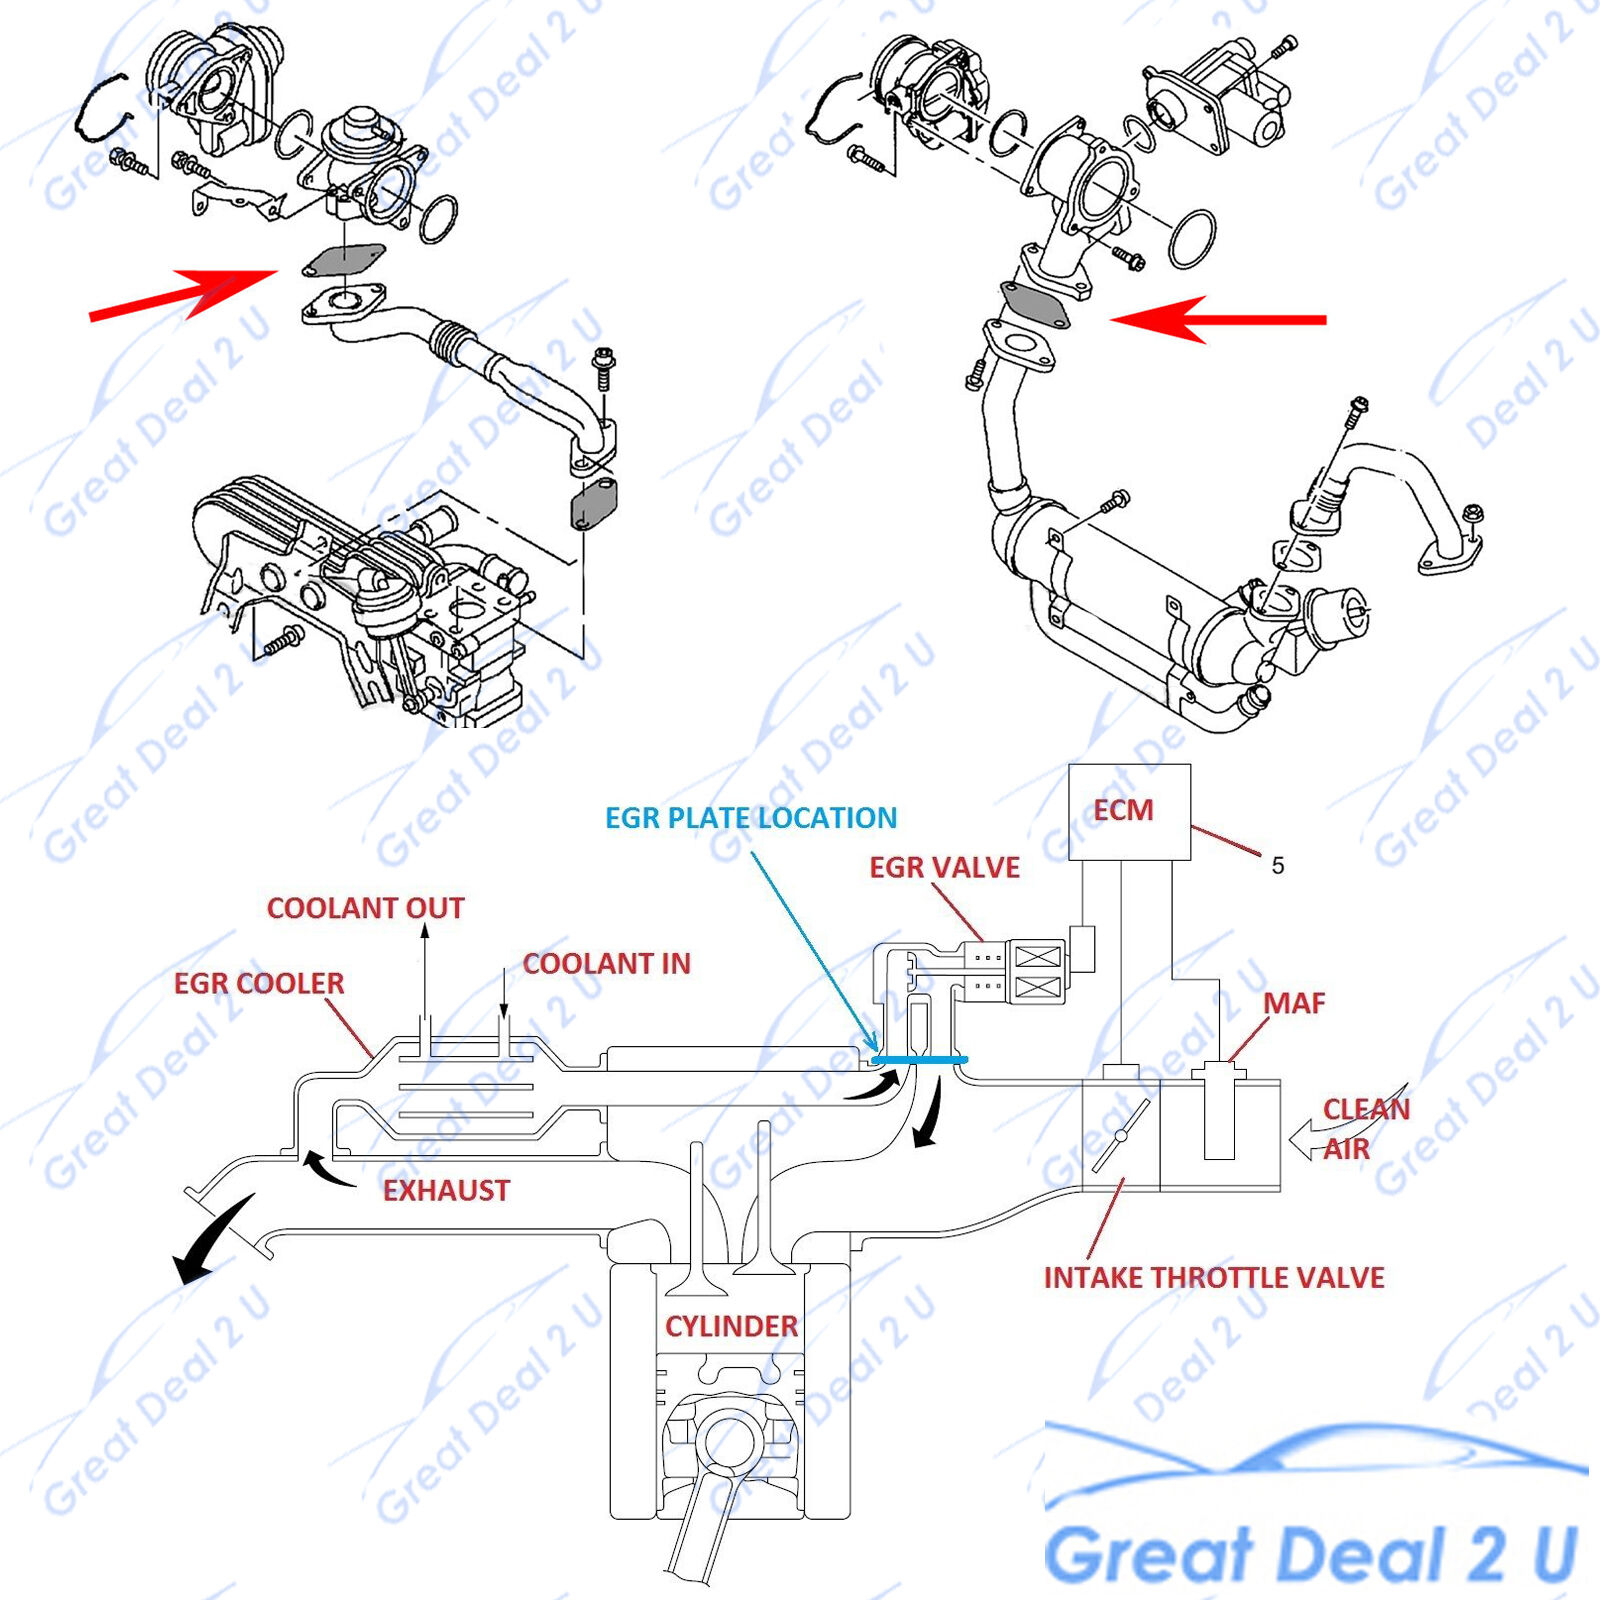 2x9ng Torque Specification Head Bolts in addition 1322952 Vacuum Line Mystery further odicis in addition 262742761059 together with Ford. on ford ranger 2 3 engine diagram